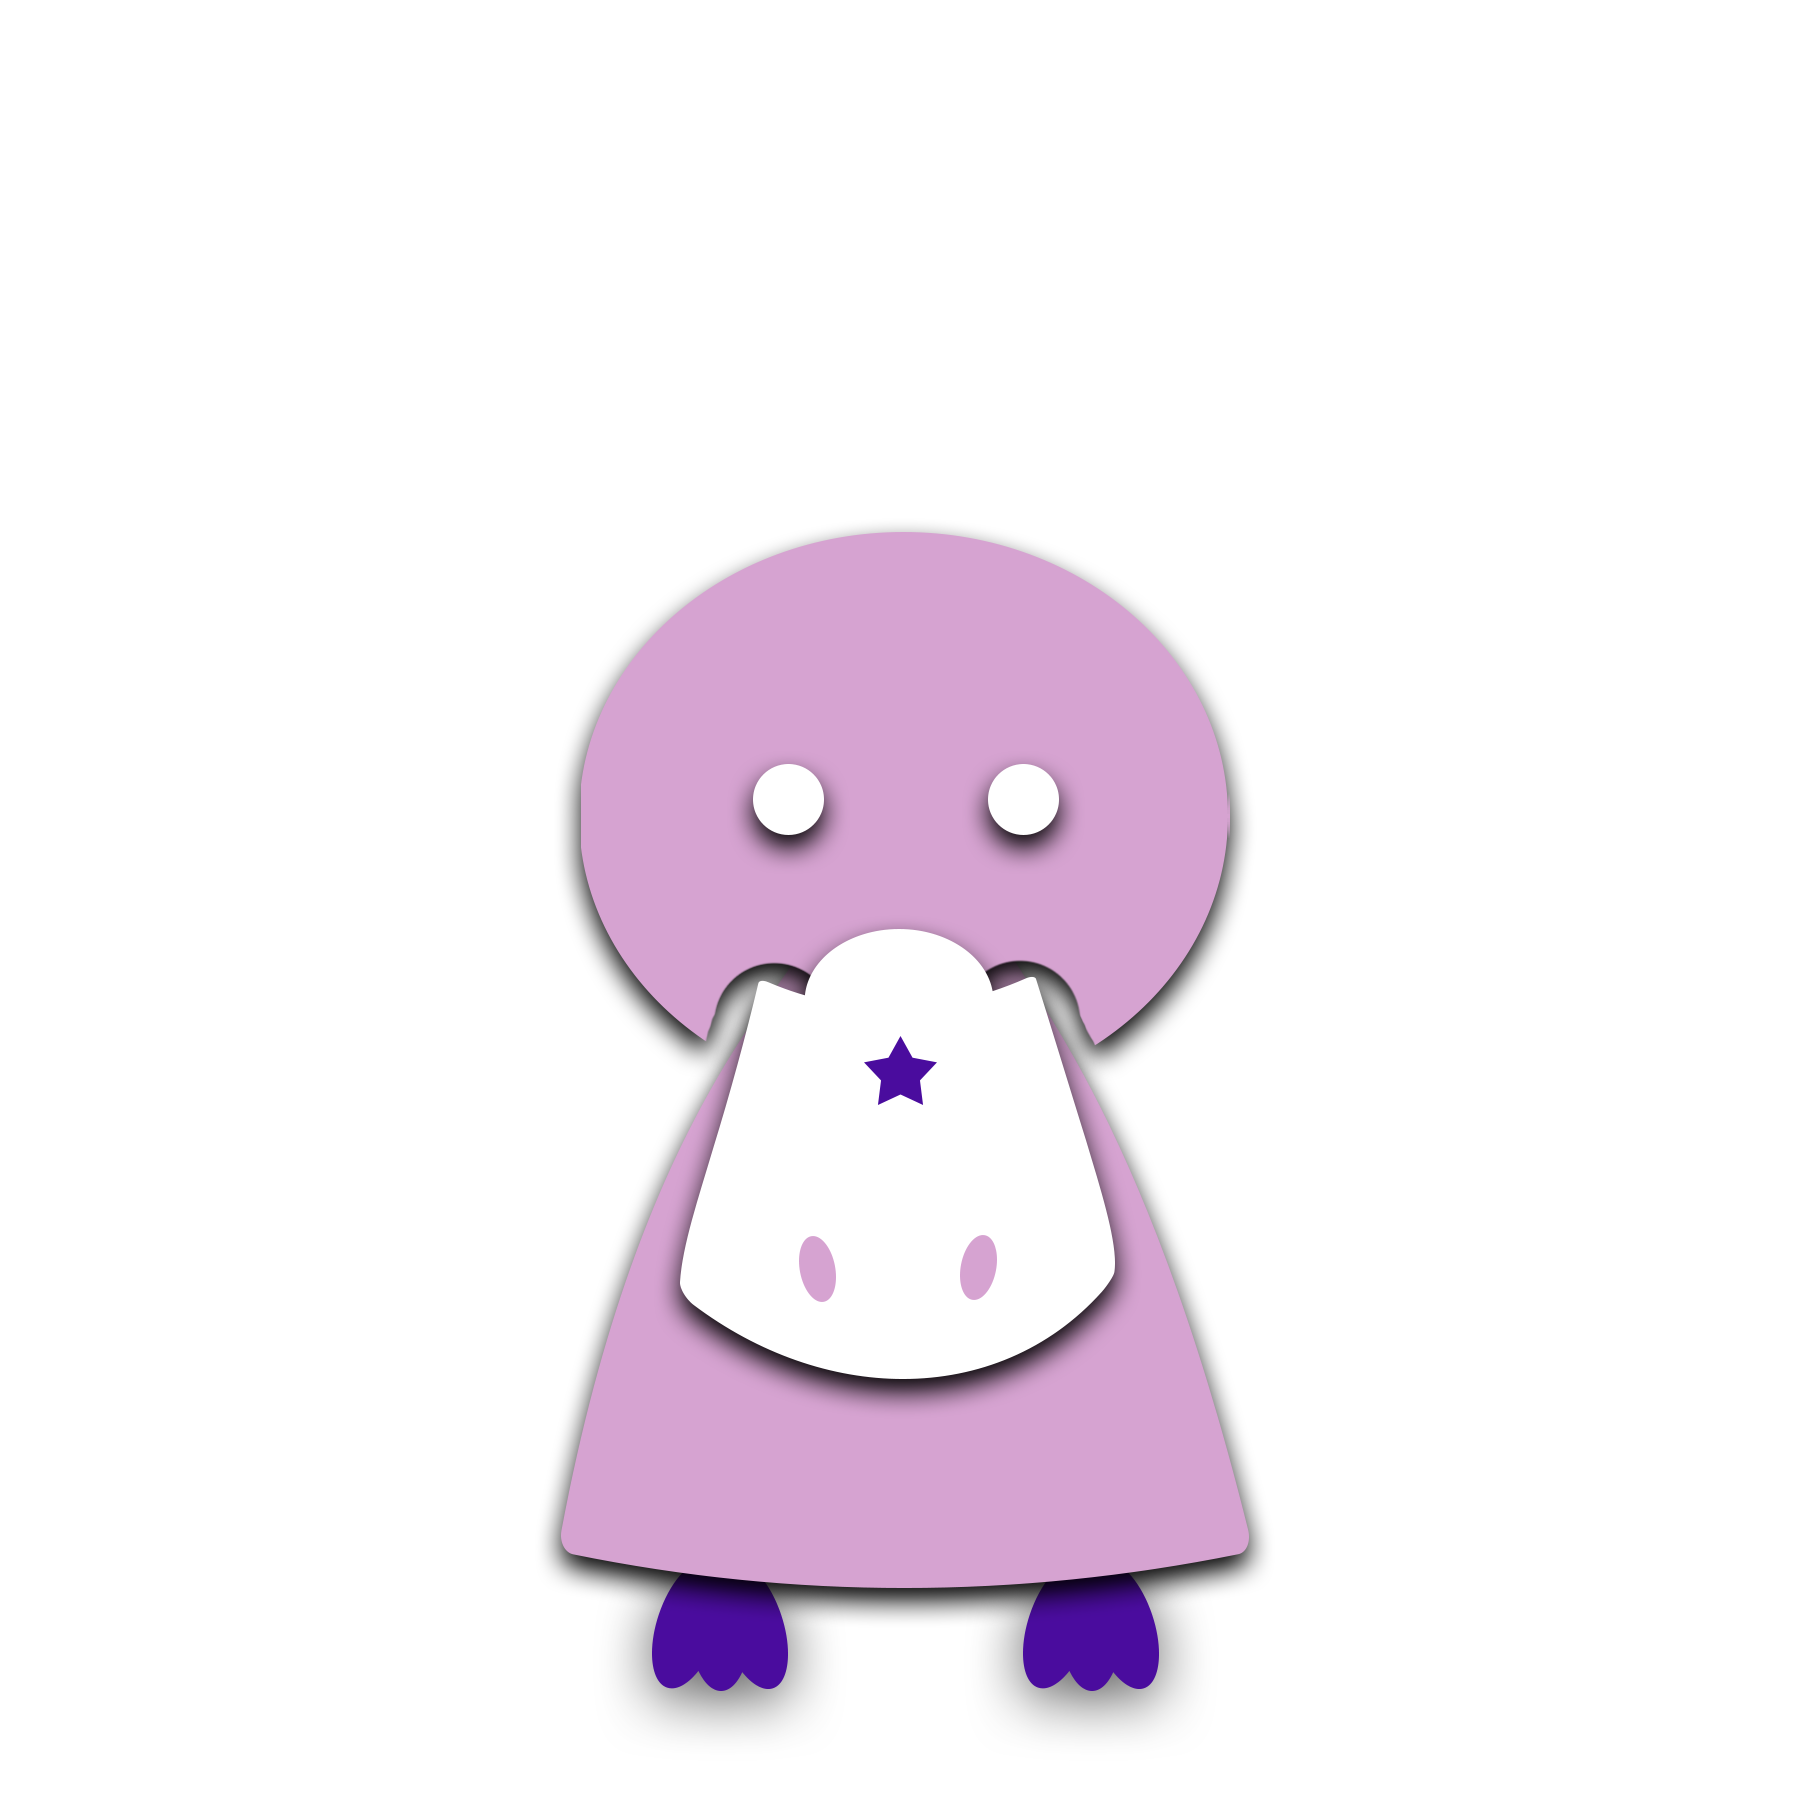 [Image] A light purple, animated platypus with dark purple feet standing by itself. Madeline Stein offers individual counseling for gifted children and gifted teens in Denver, CO.